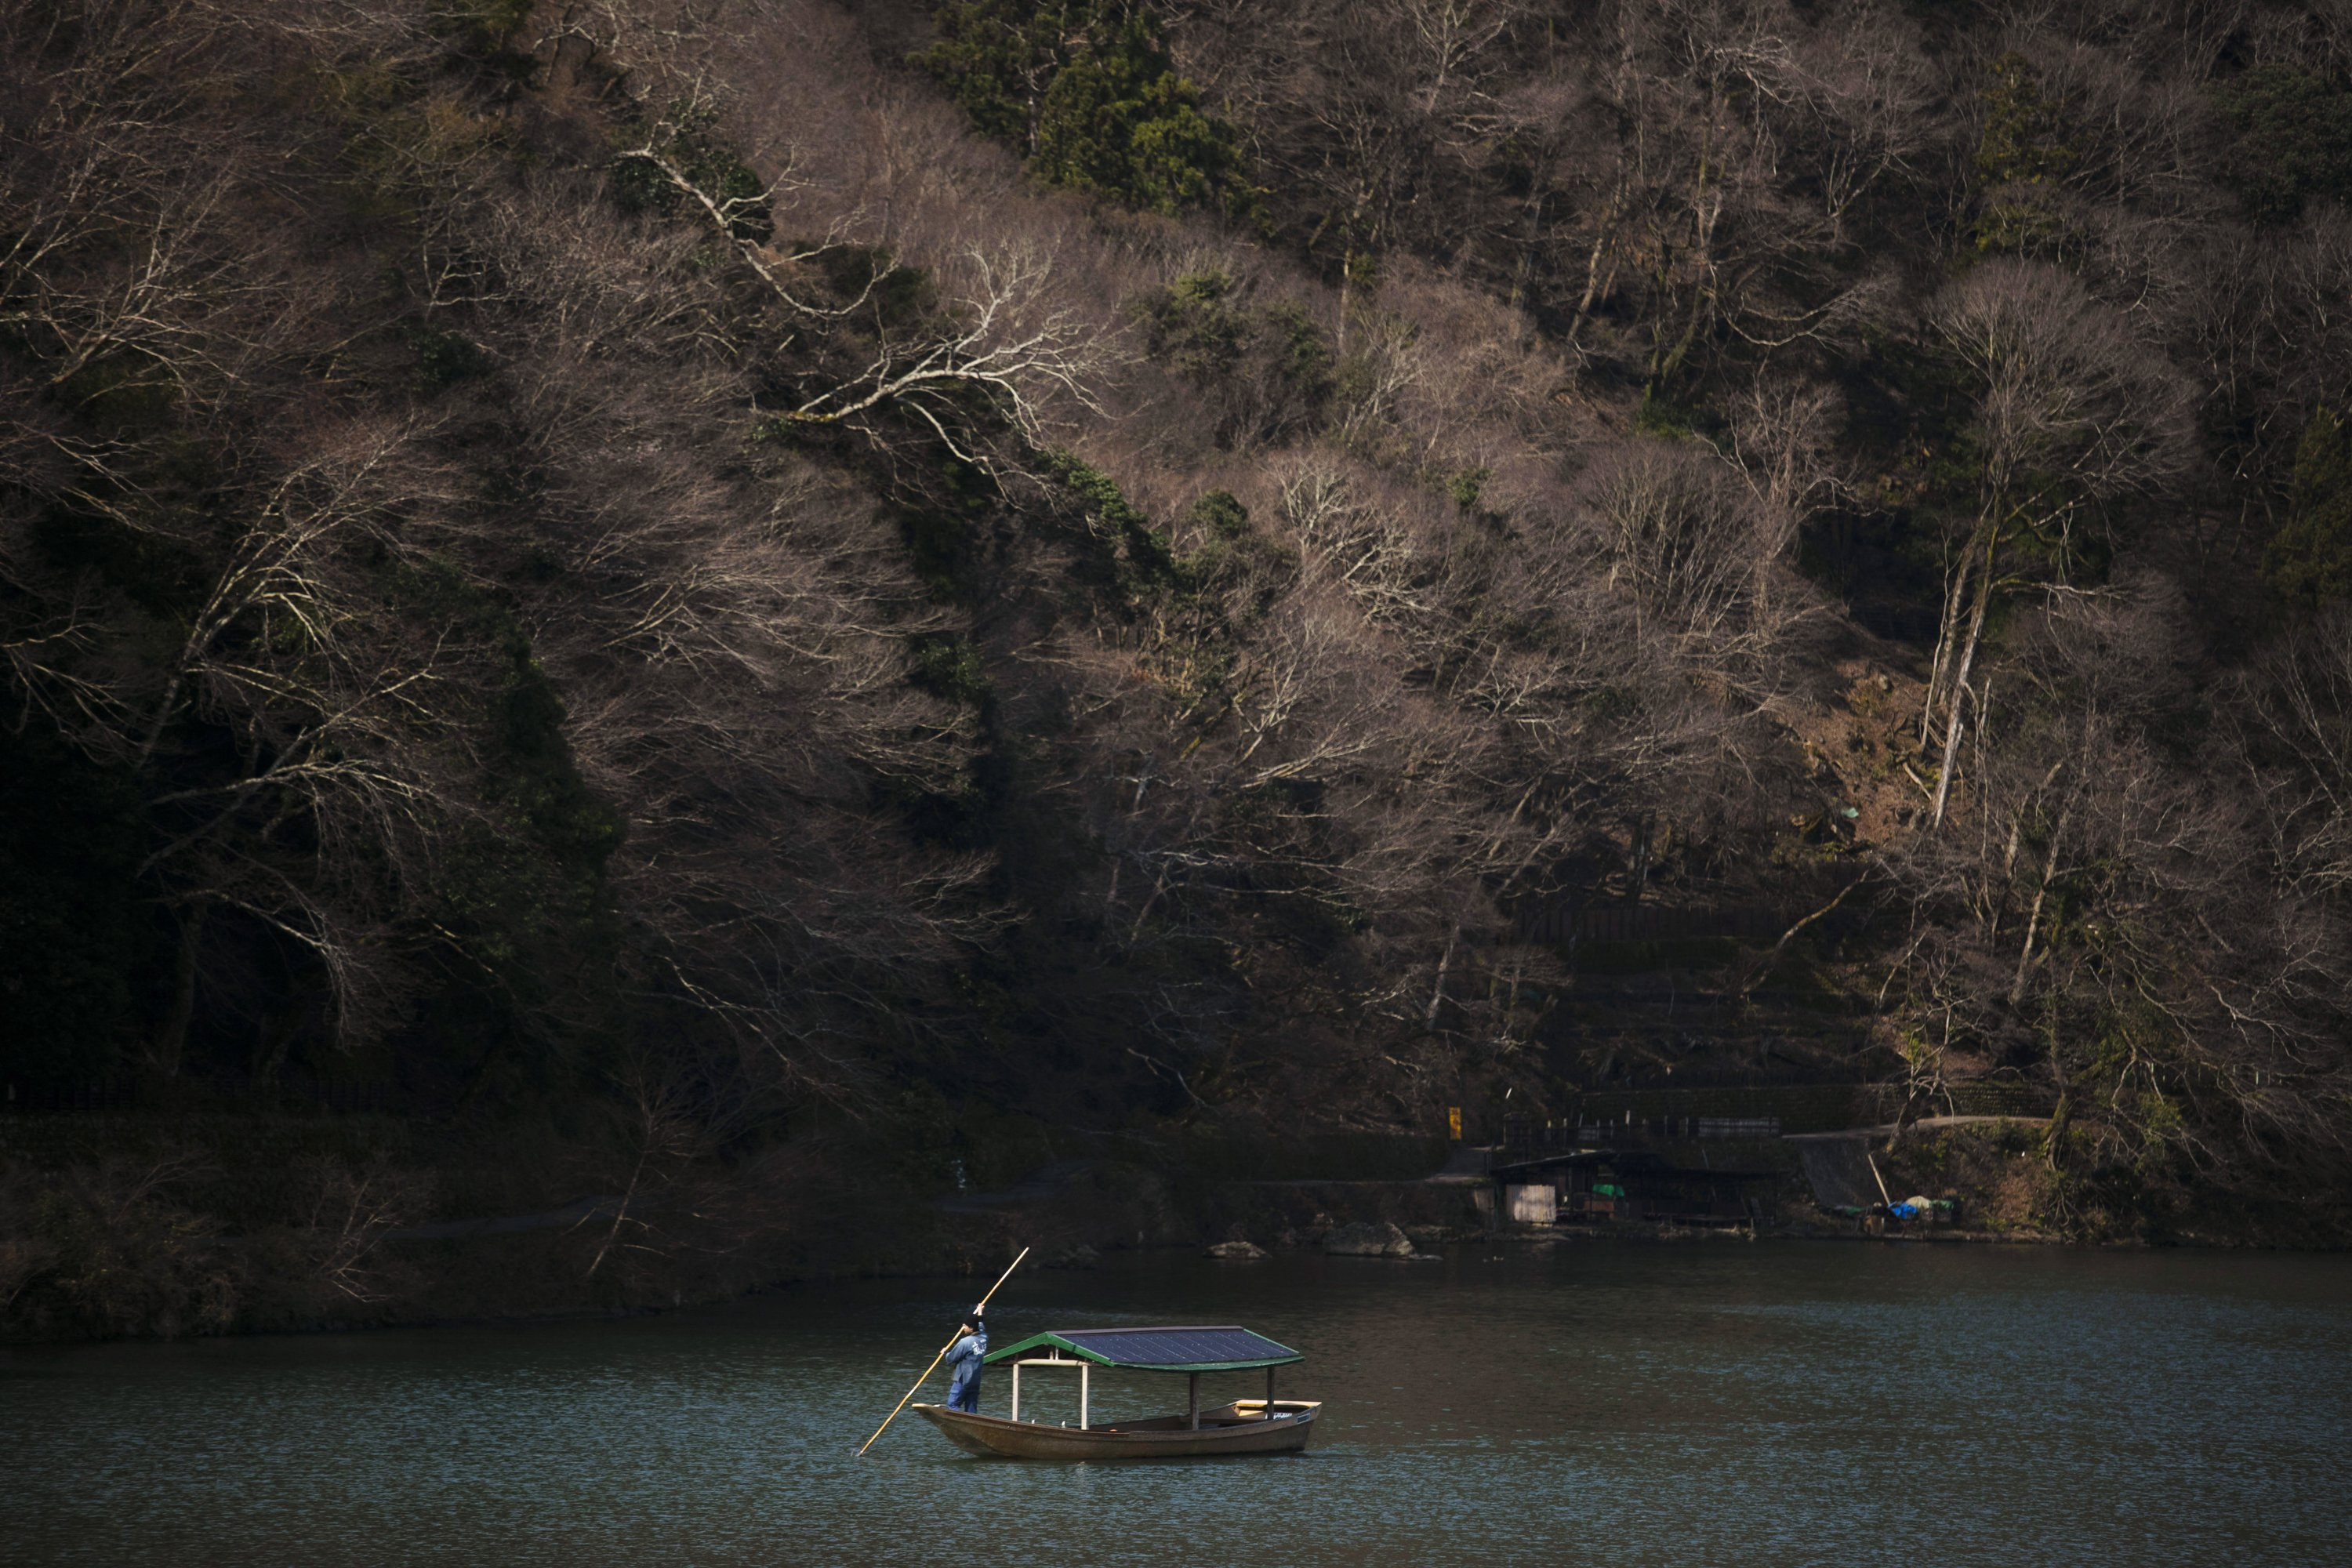 AP PHOTOS: Cherry blossoms, empty stores in virus-hit Japan